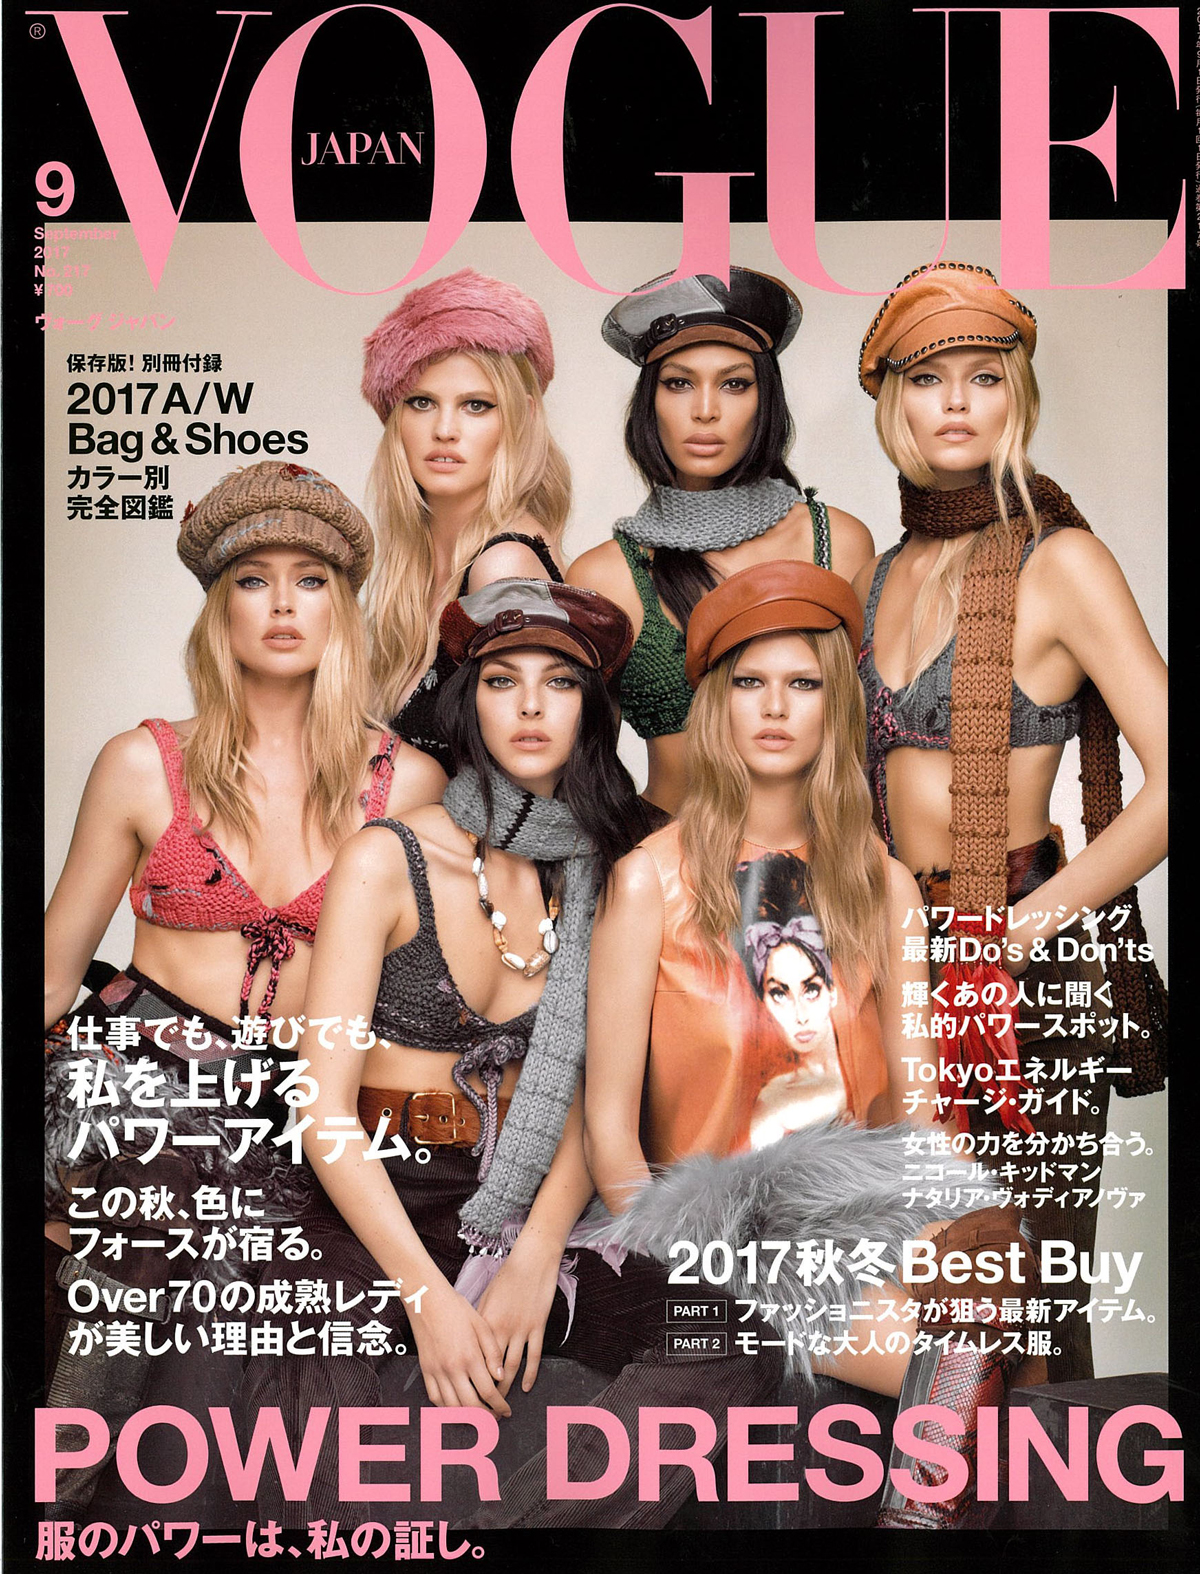 Launer London handbag is introduced in Vogue Japan magazine.